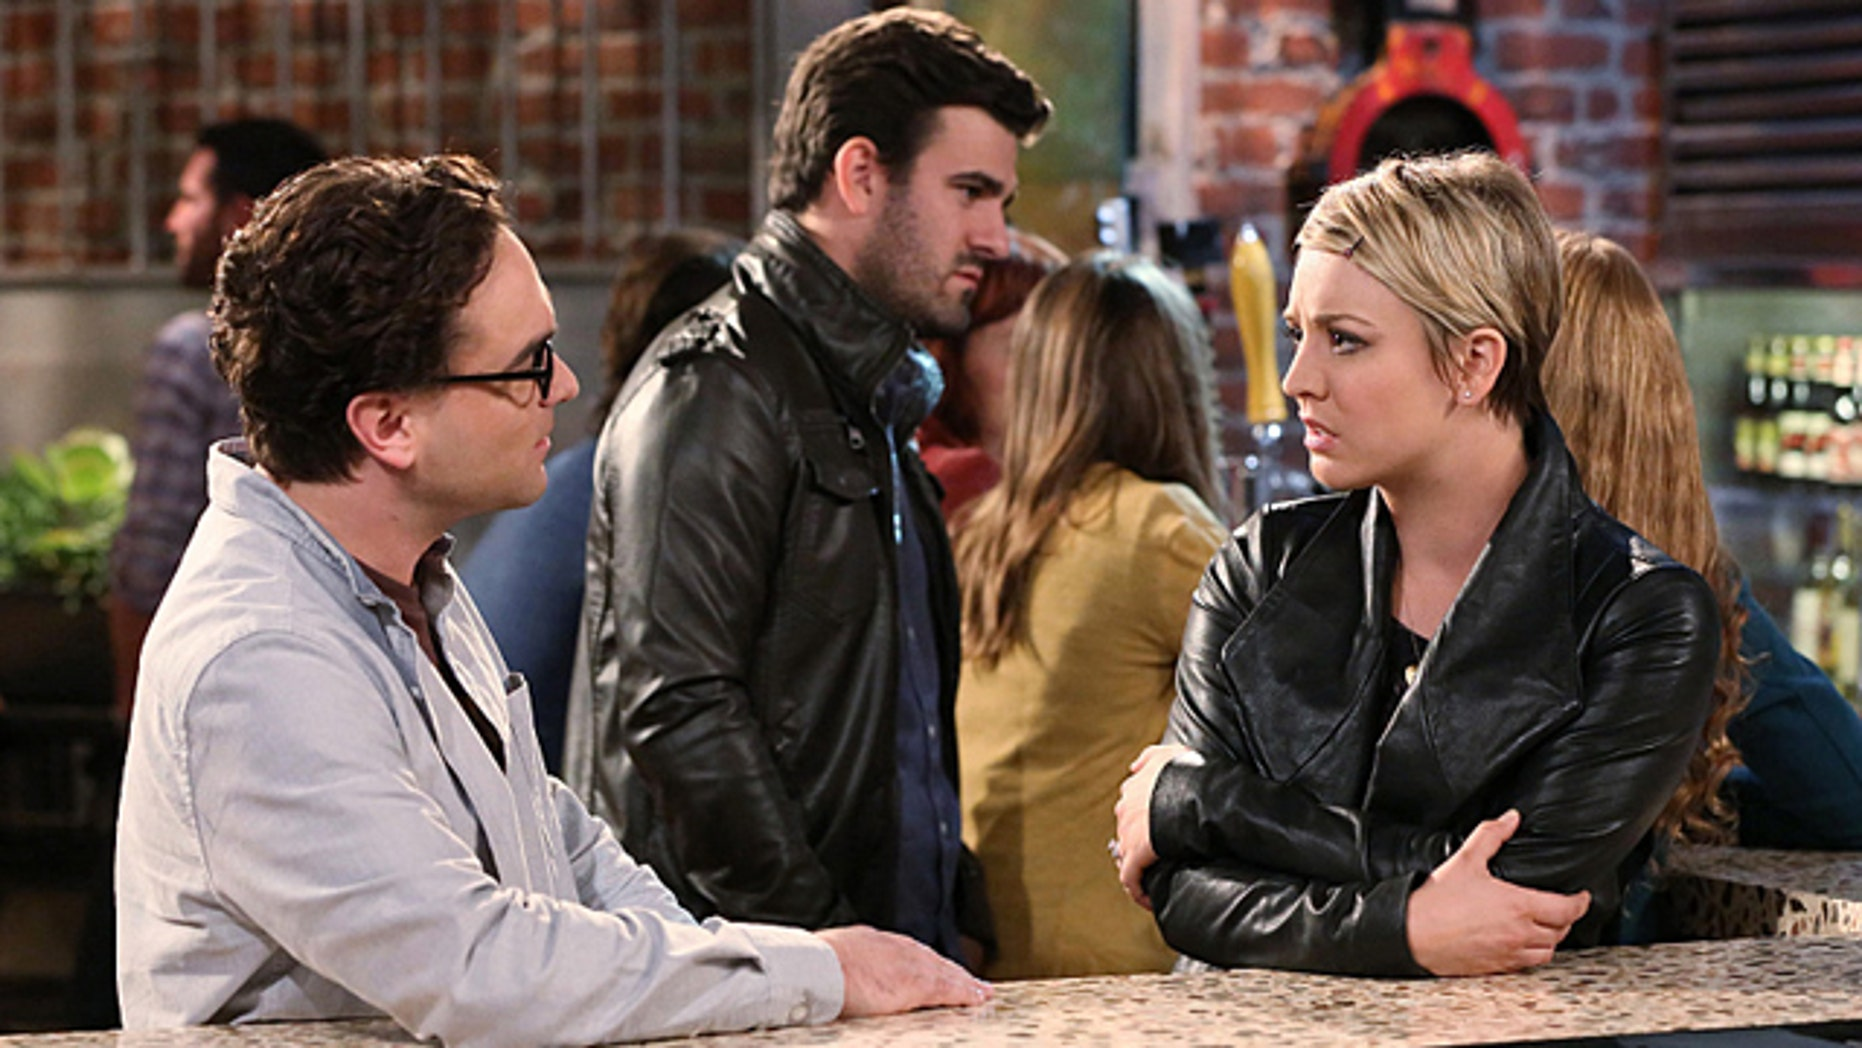 Leonard (Johnny Galecki) and Penny (Kaley Cuoco-Sweeting) try to prove Sheldon wrong after he says that he and Amy are a 'superior couple' on 'The Big Bang Theory' (Michael Yarish/Warner Bros. Entertainment Inc.)